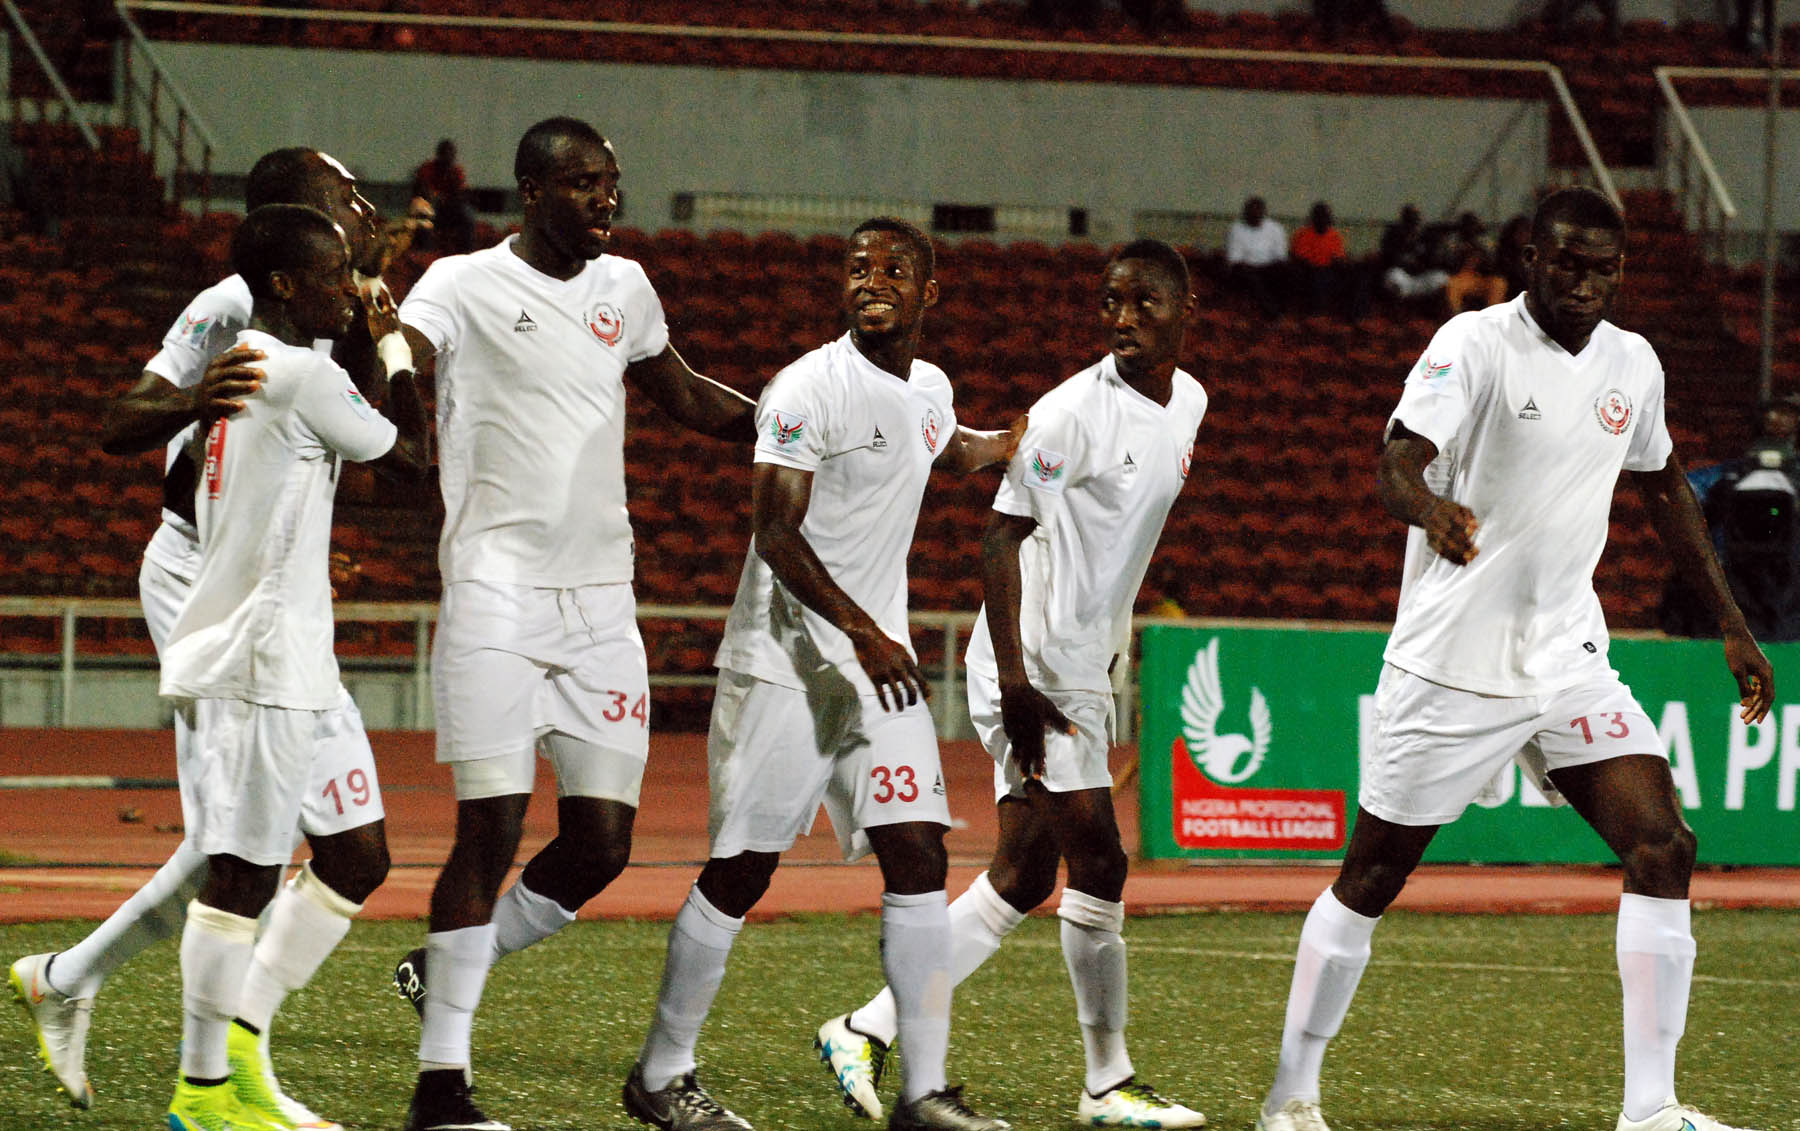 Enugu Rangers Shirt Goes For N5000, Club's Souvenir‎s Also Flood Enugu Markets